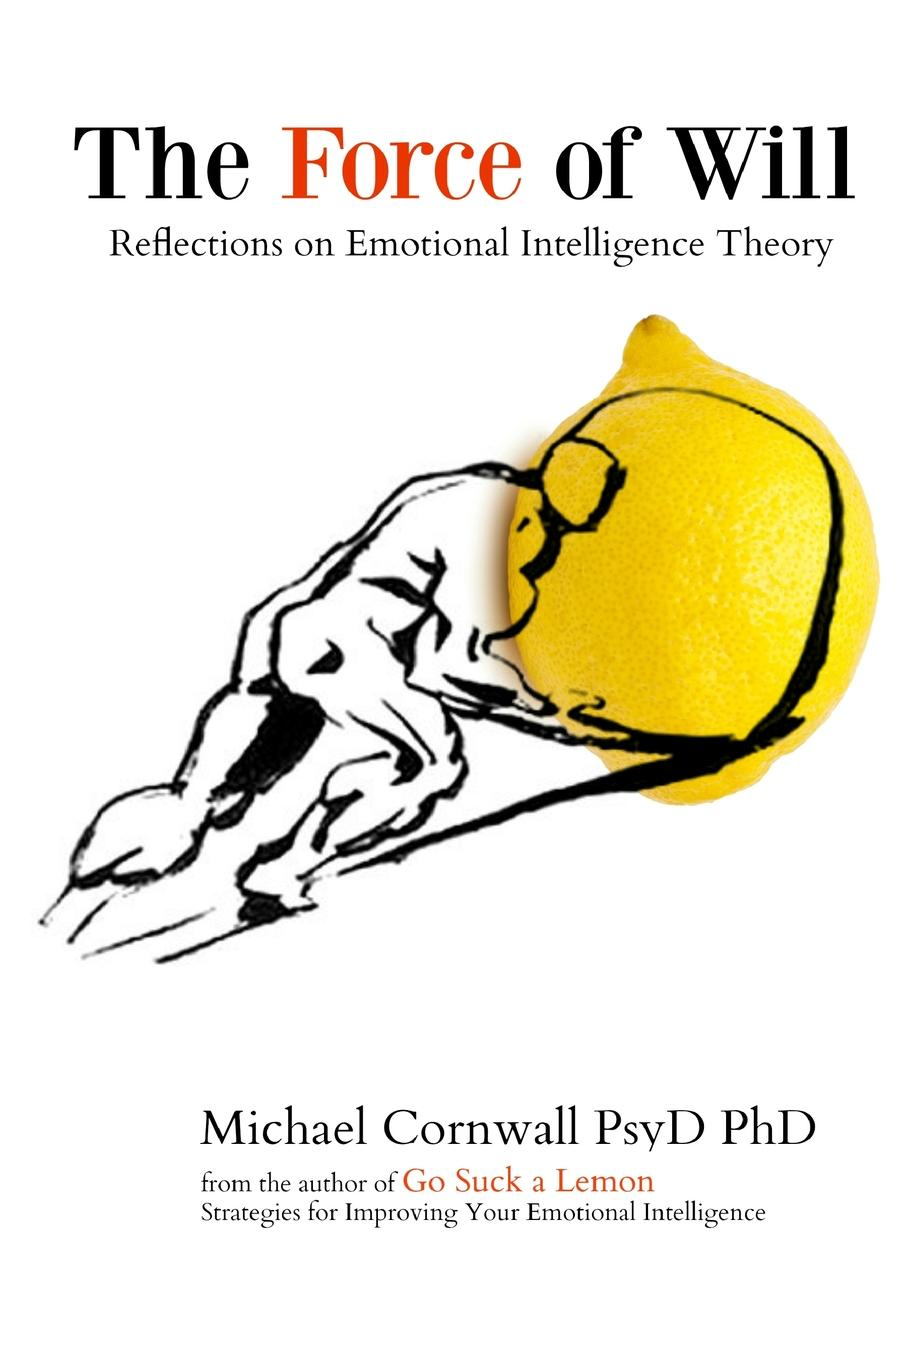 PhD Michael Cornwall The Force of Will diana giddon unequaled tips for building a successful career through emotional intelligence isbn 9781119246084